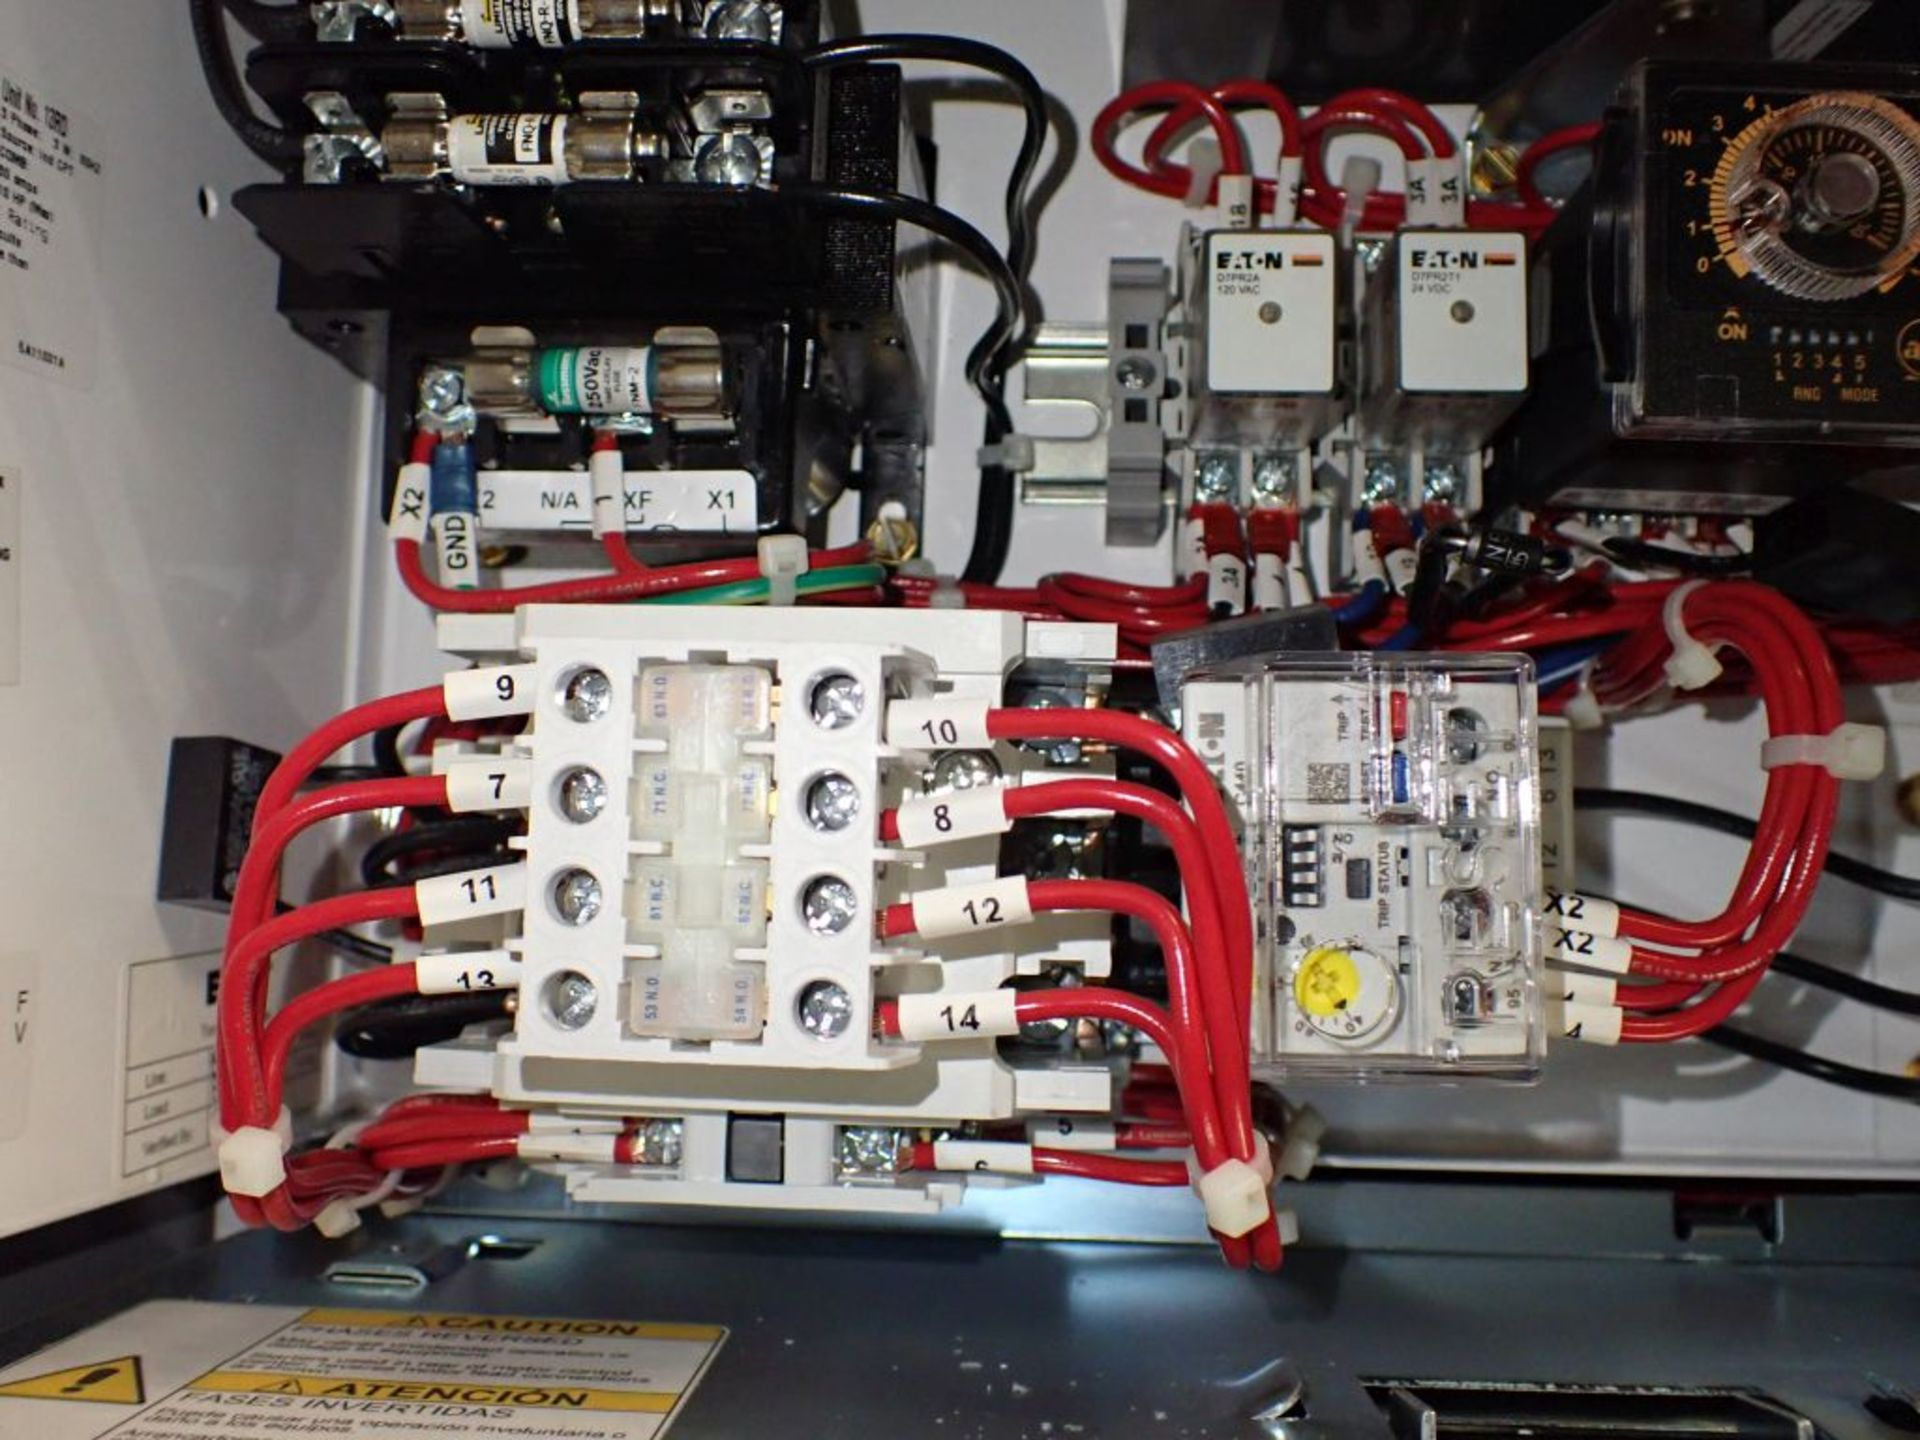 Eaton Freedom 2100 Series Motor Control Center | (11) F206-30A-10HP; (5) F206-15A-10HP; (1) SVX900- - Image 13 of 102